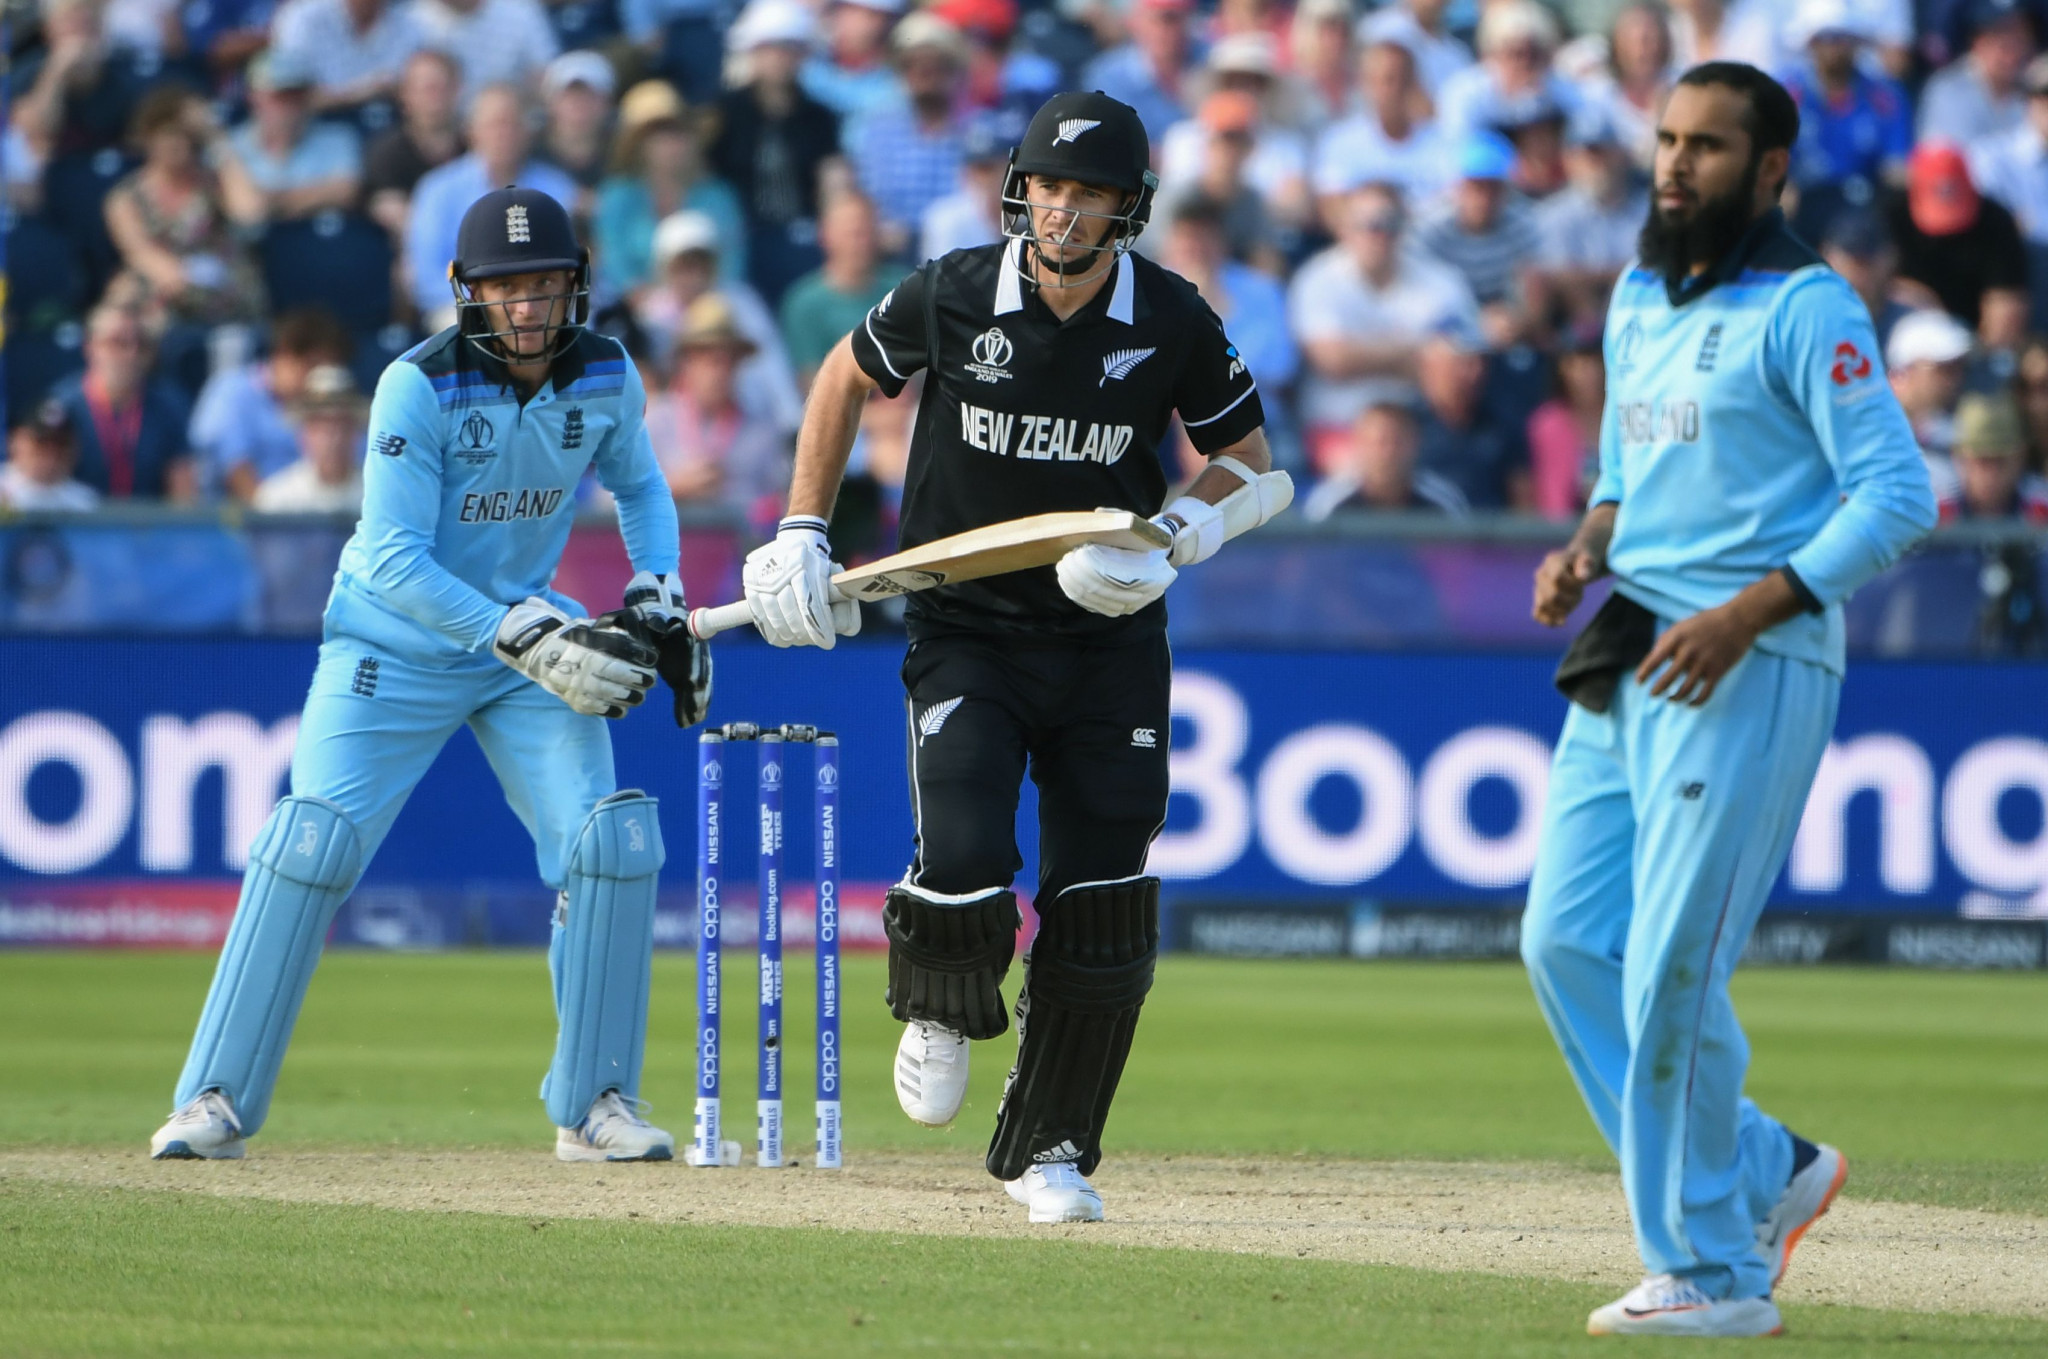 New Zealand's chase never got going as they collapsed to 186 all out ©Getty Images